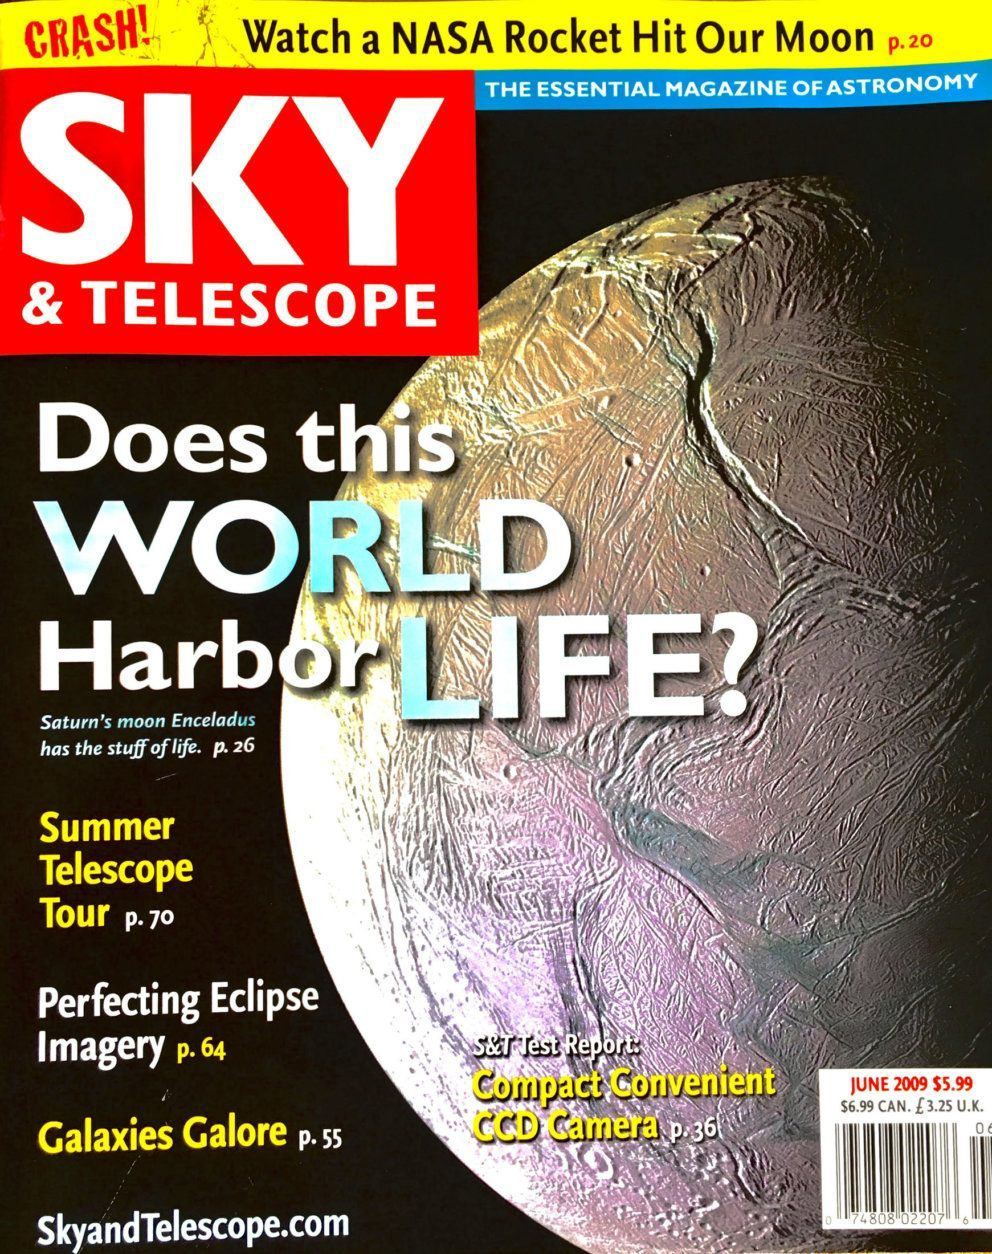 Greg Redfern was doing a story on the spacecraft and their mission to the Moon for Sky and Telescope magazine's June 2009 issue.(Courtesy Greg Redfern)